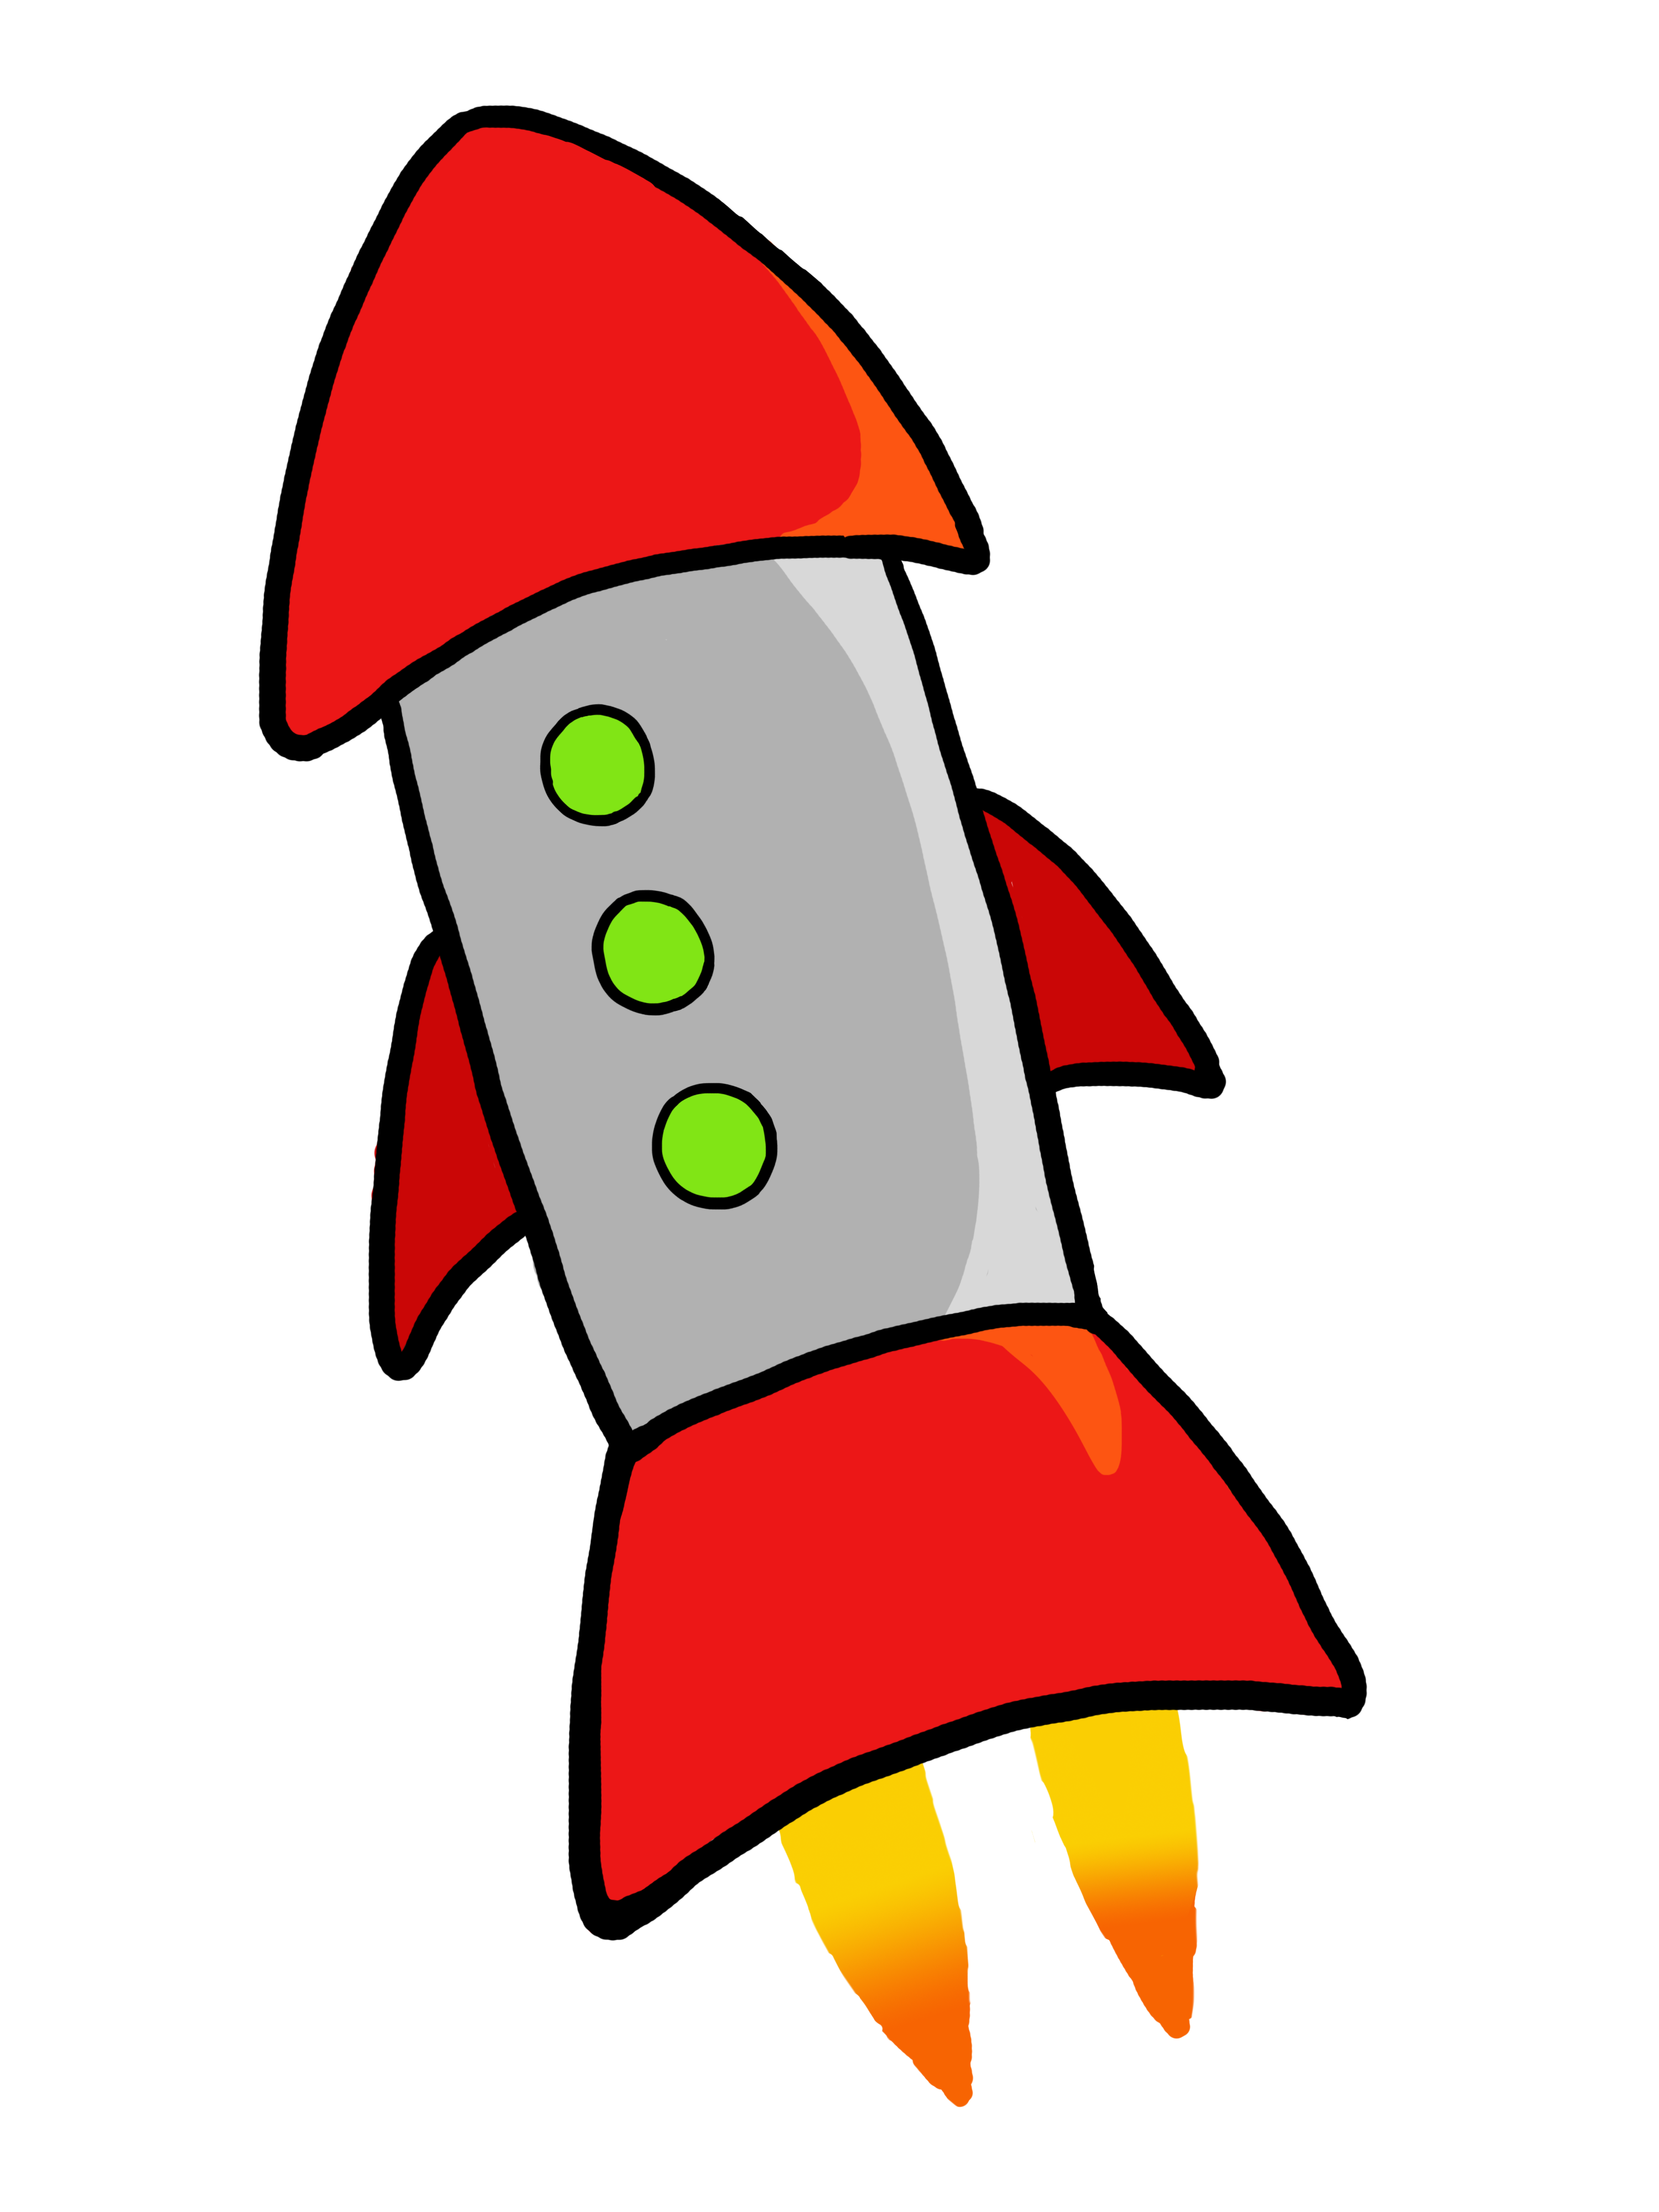 3000x4000 Collection Of Free Rocket Clipart High Quality, Free